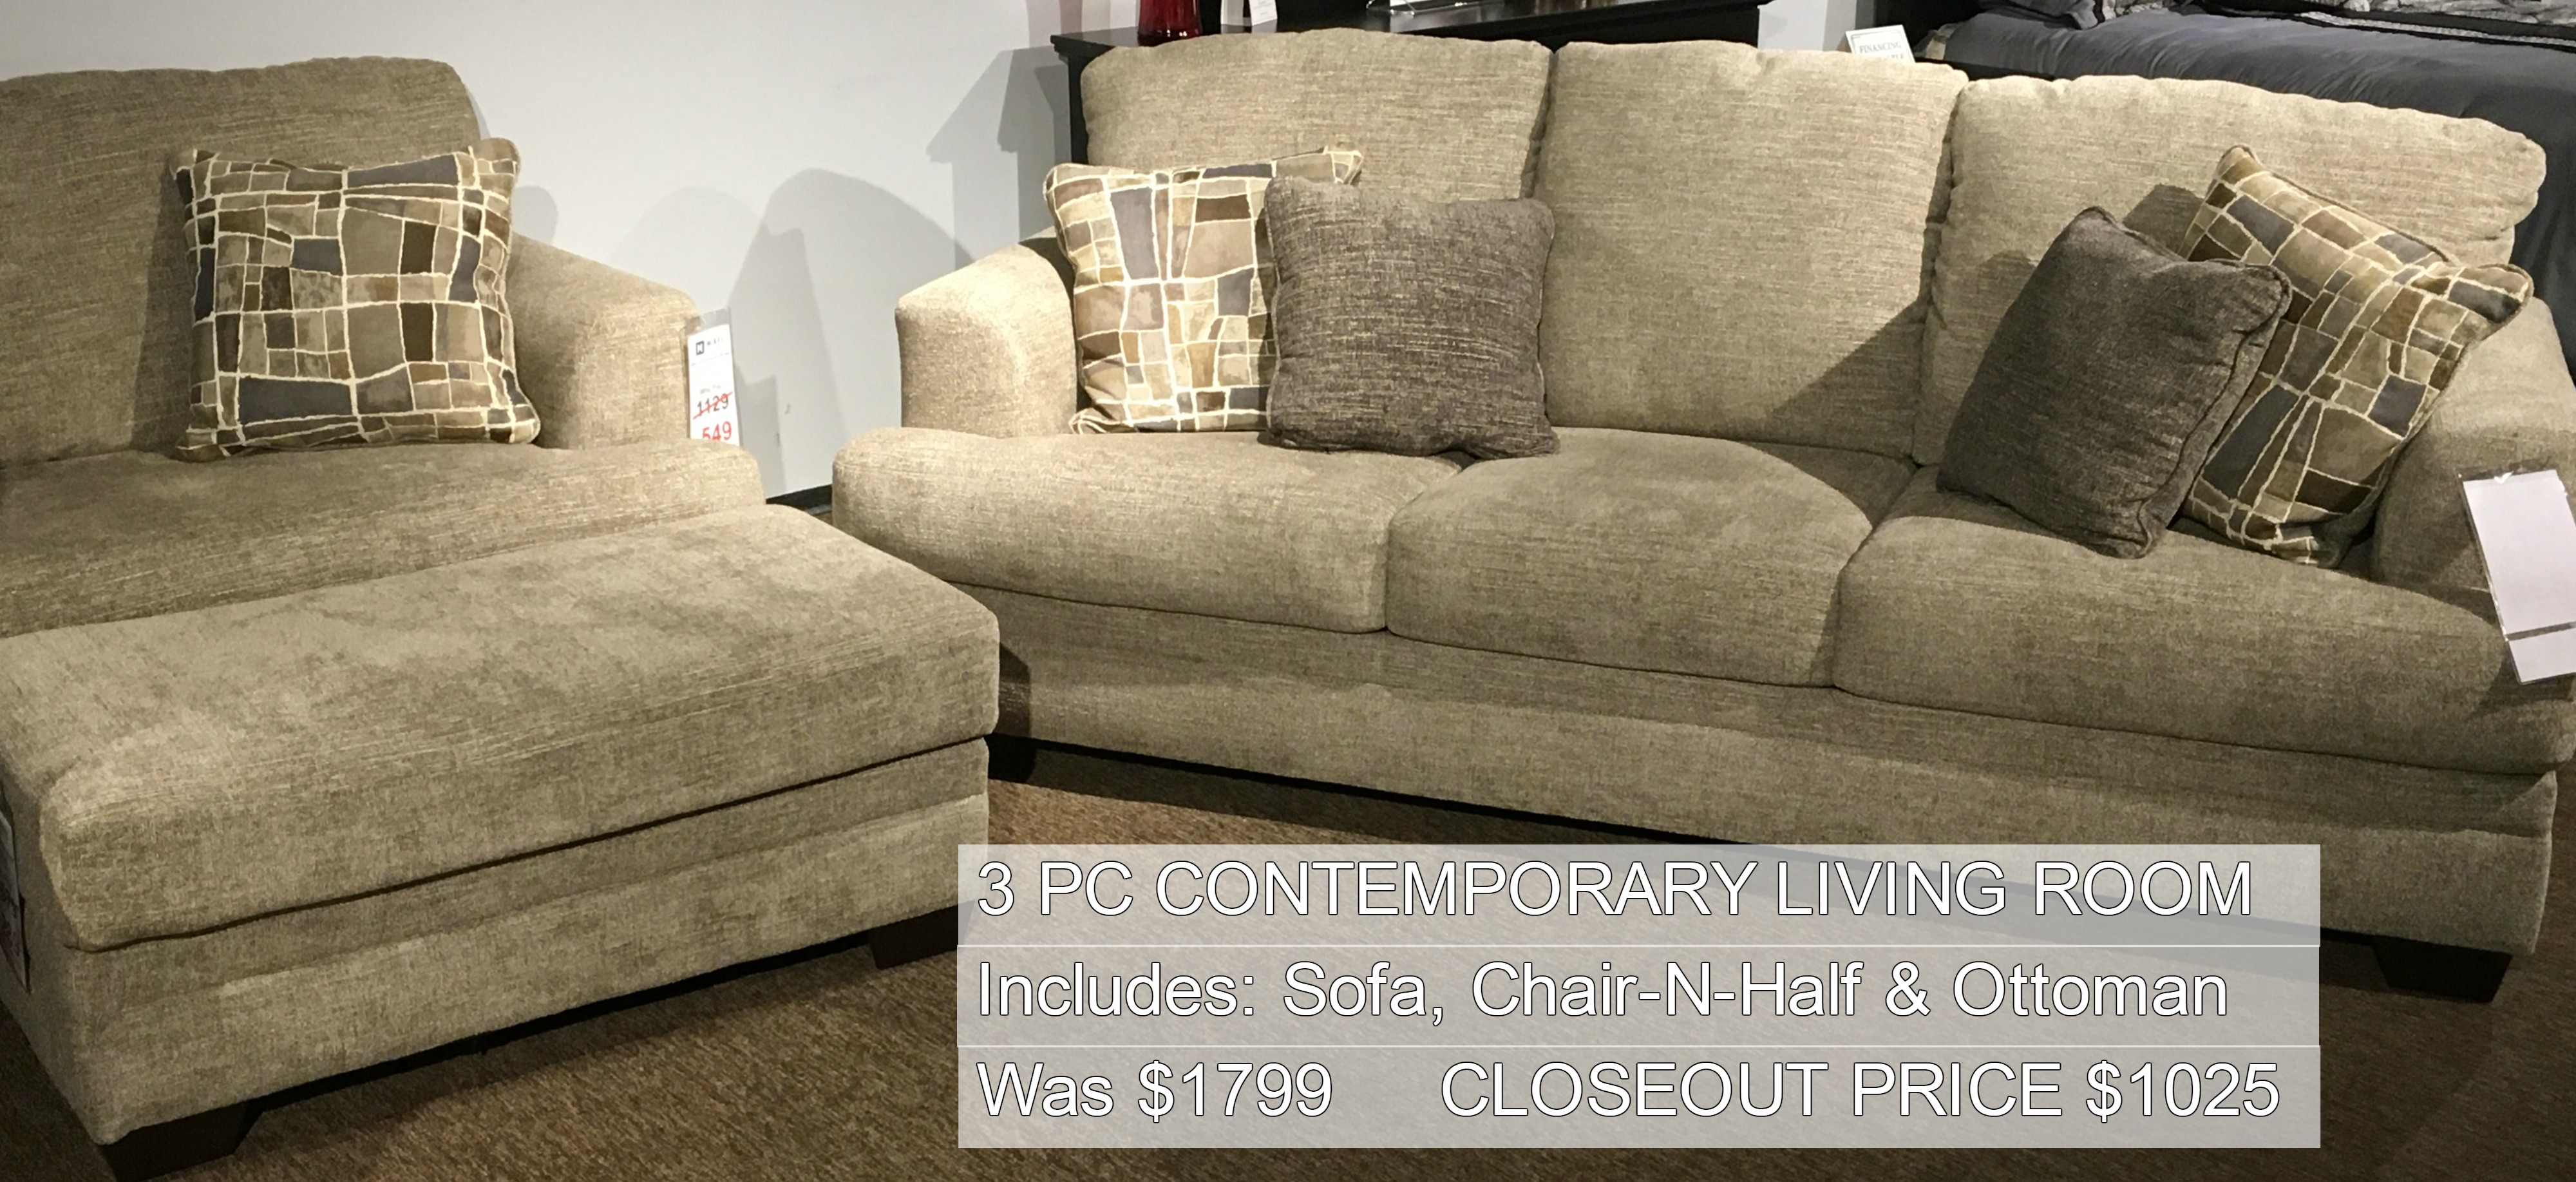 3PC Contemporary Living Room Only $1025